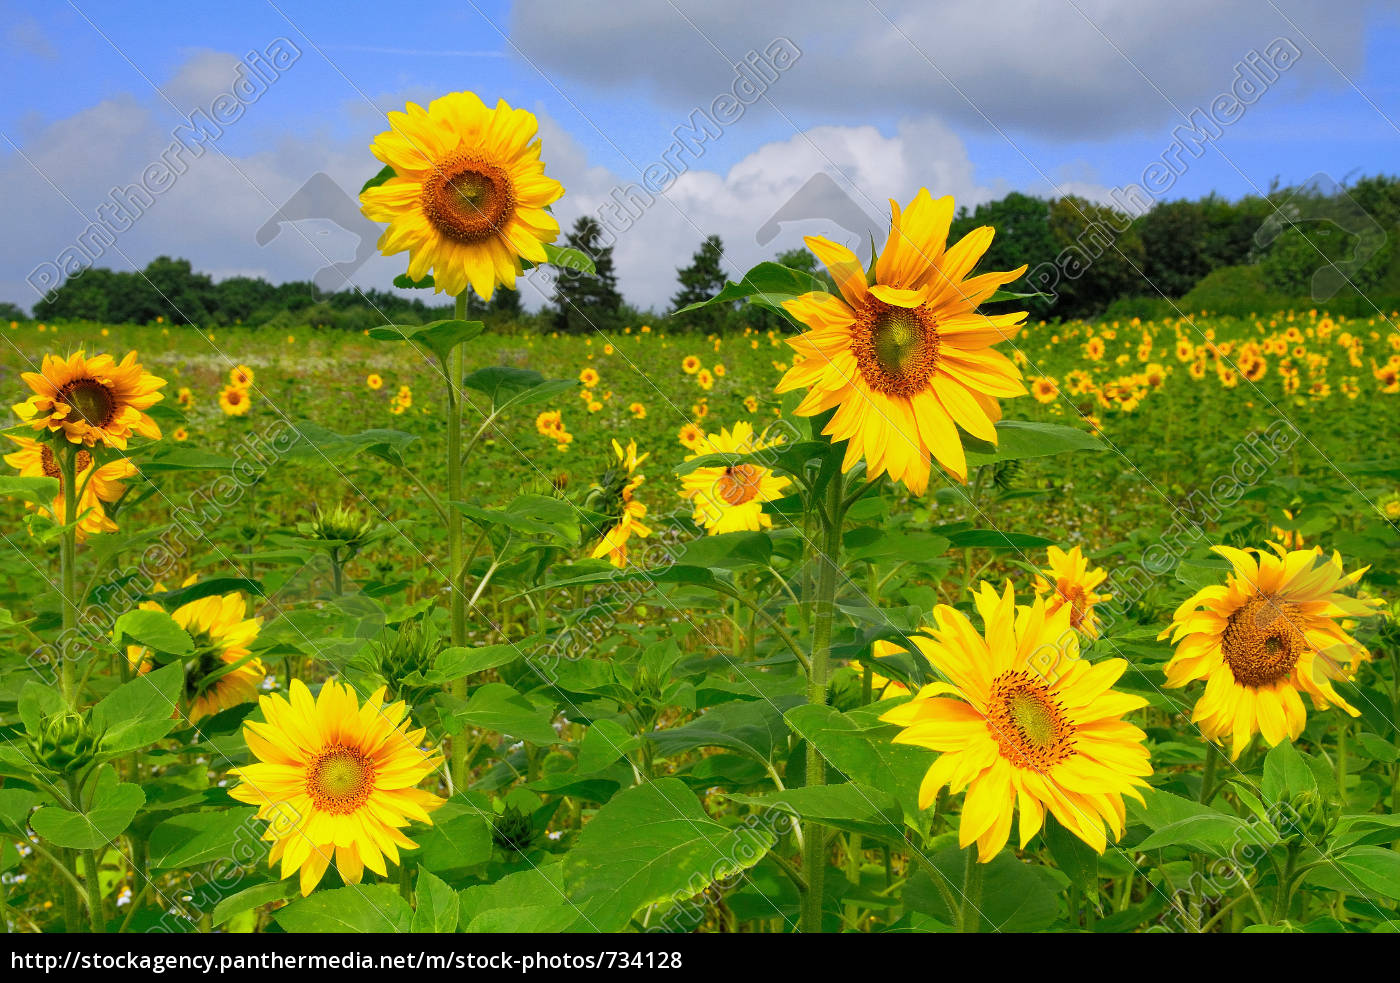 sunflower, field - 734128